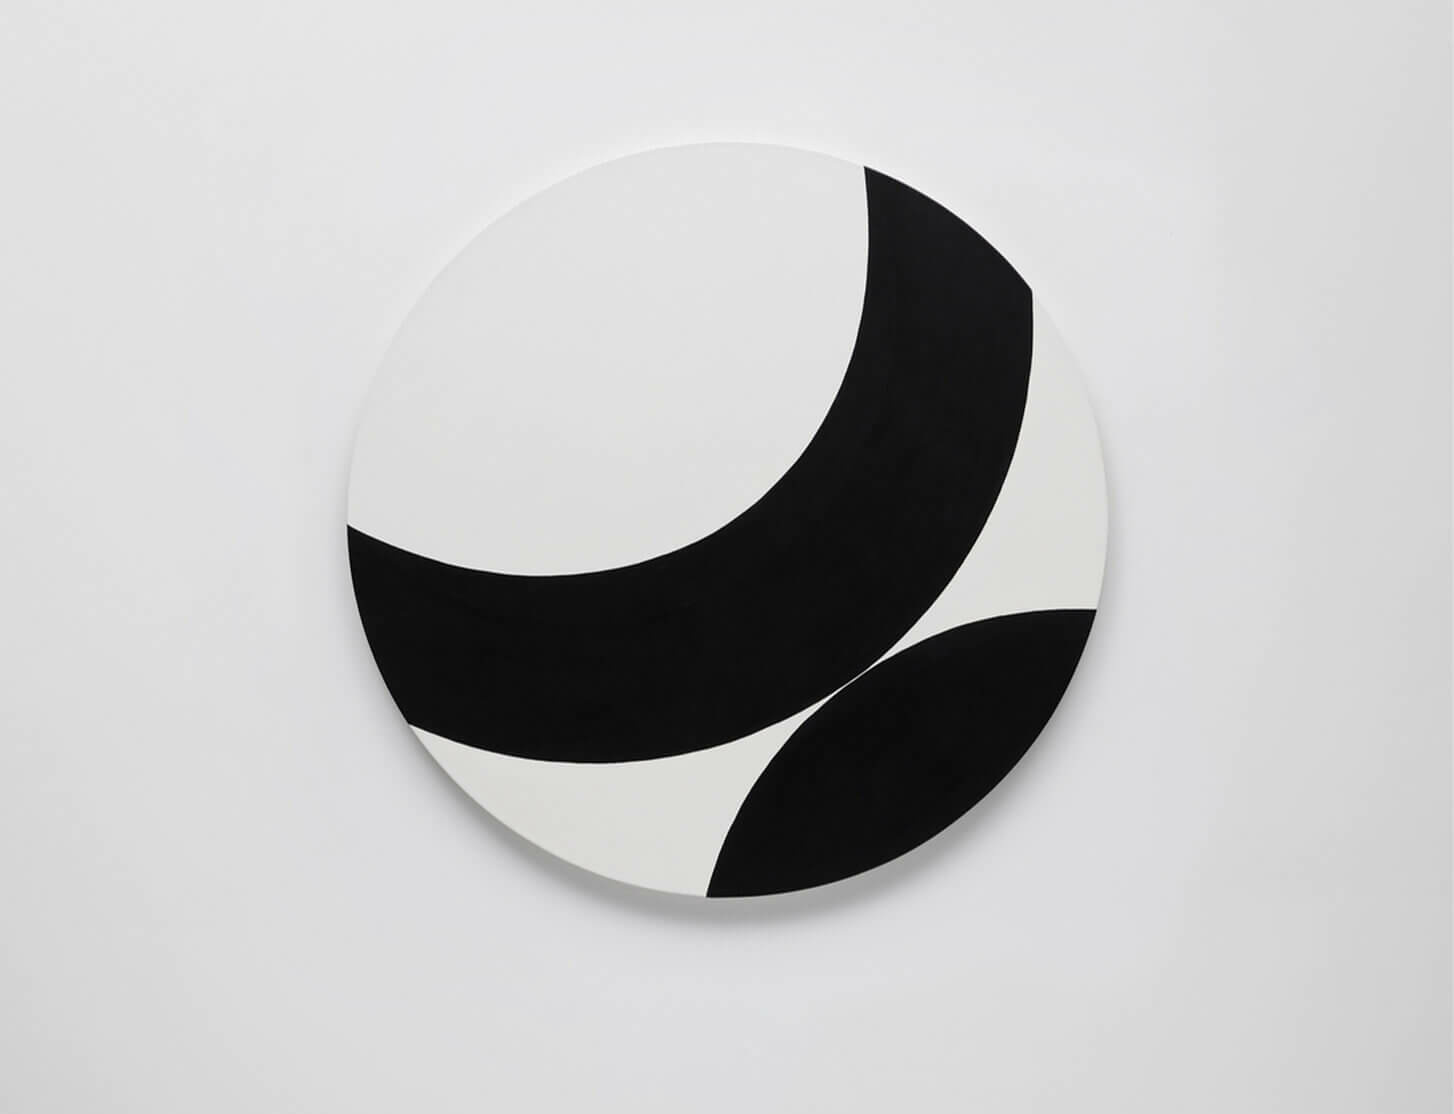 Lisson Gallery at Frieze New York 2019